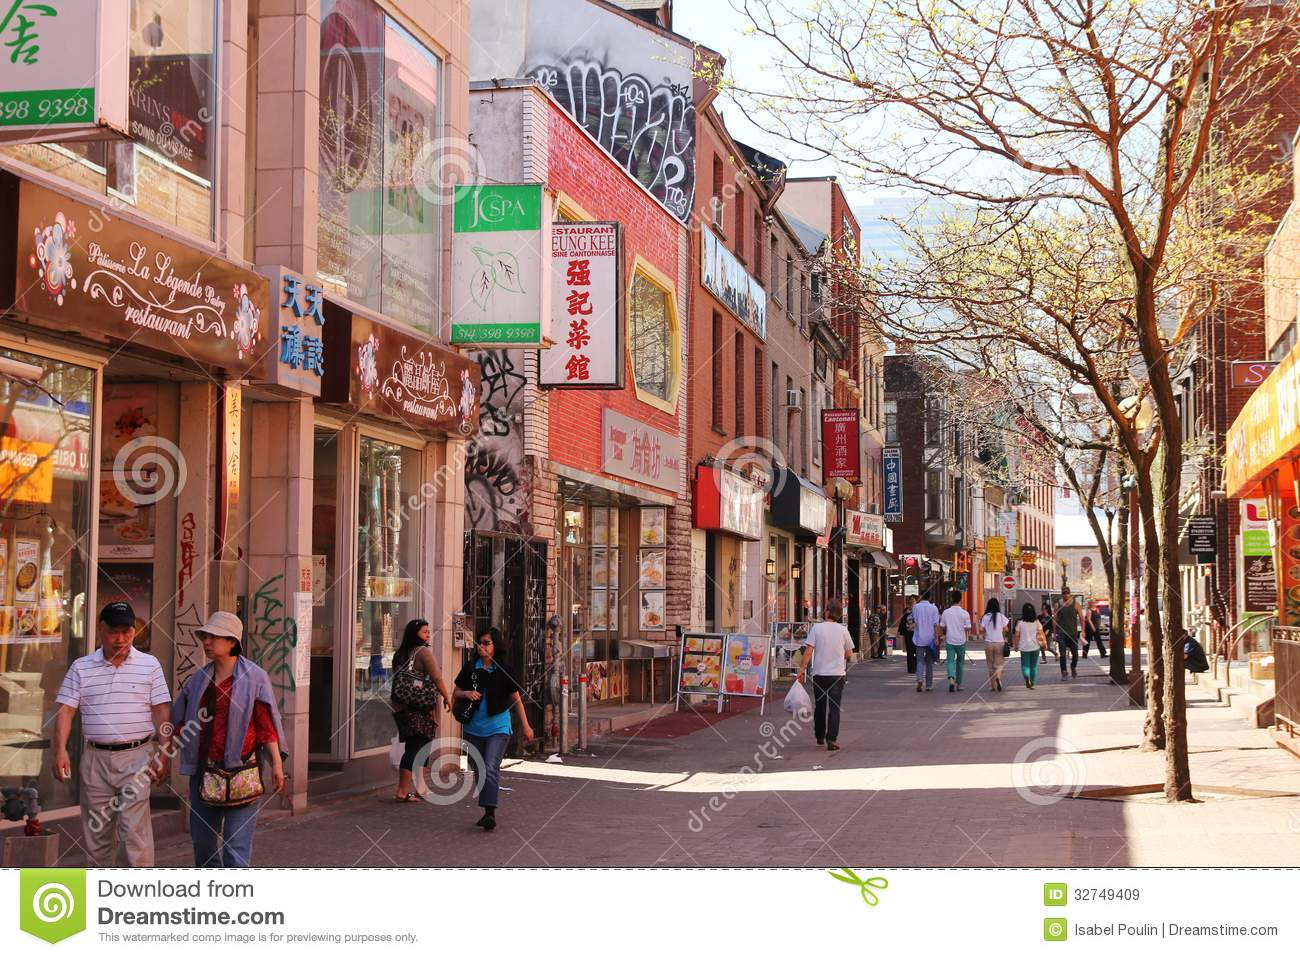 montreal s chinatown canada may little street quarter third biggest canada may 32749409